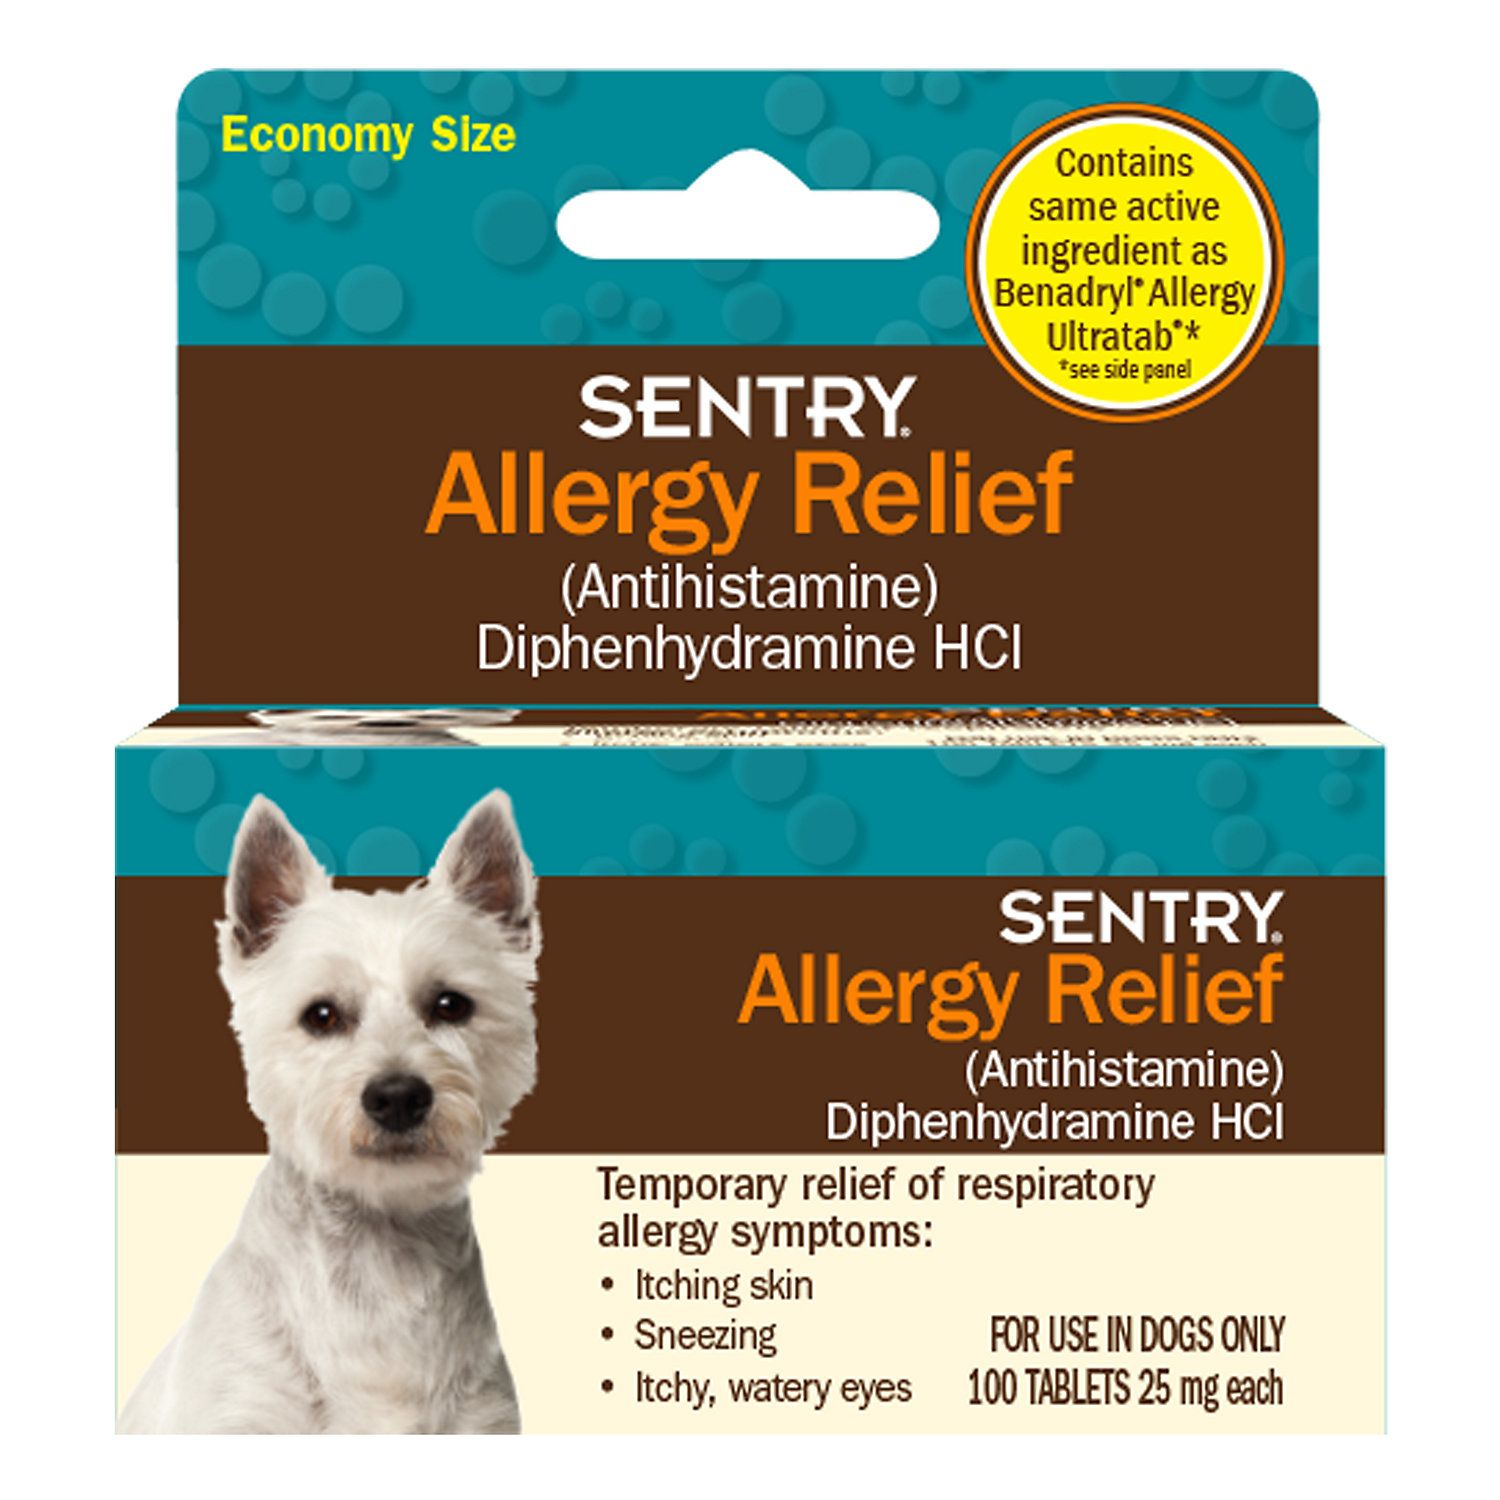 Sentry Allergy Relief Dog Tablets 100 Count Allergy Relief